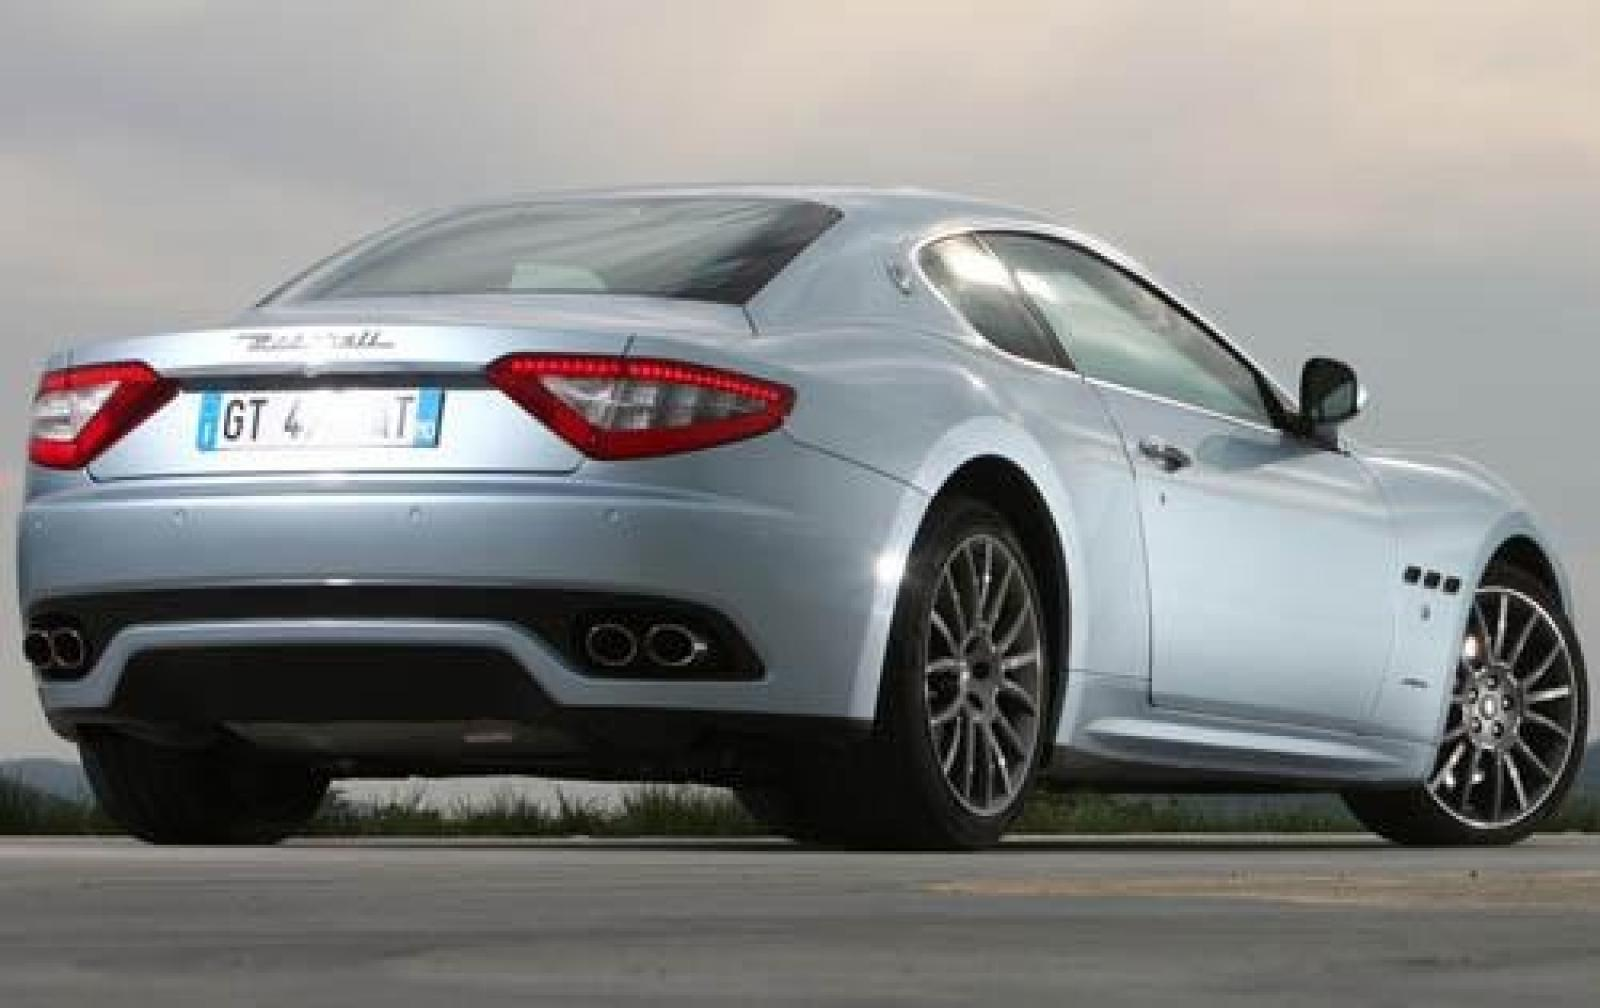 2010 maserati granturismo information and photos zombiedrive. Black Bedroom Furniture Sets. Home Design Ideas